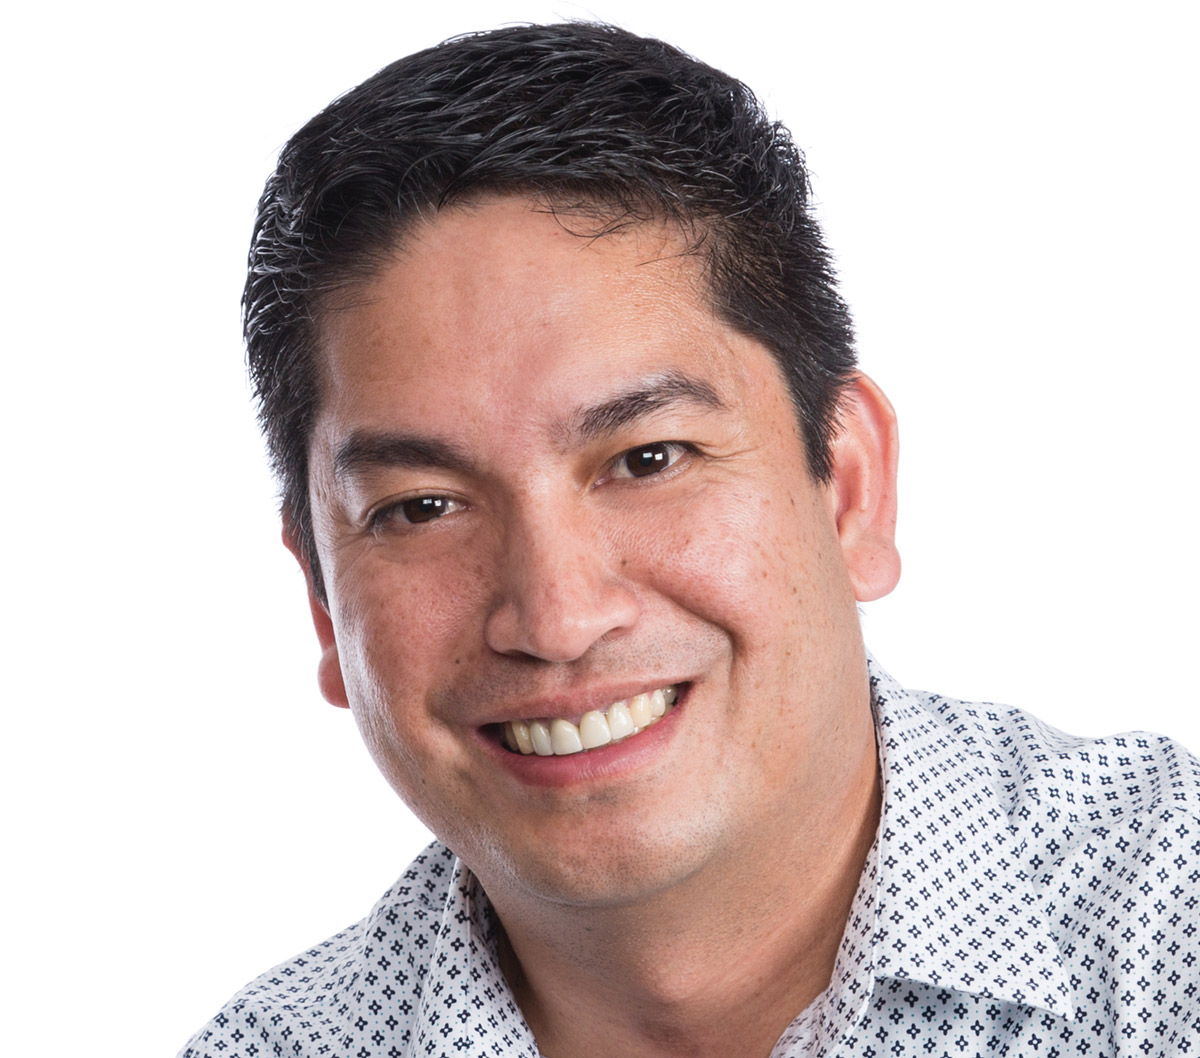 A headshot of Eddie Villarta against a plain white background.